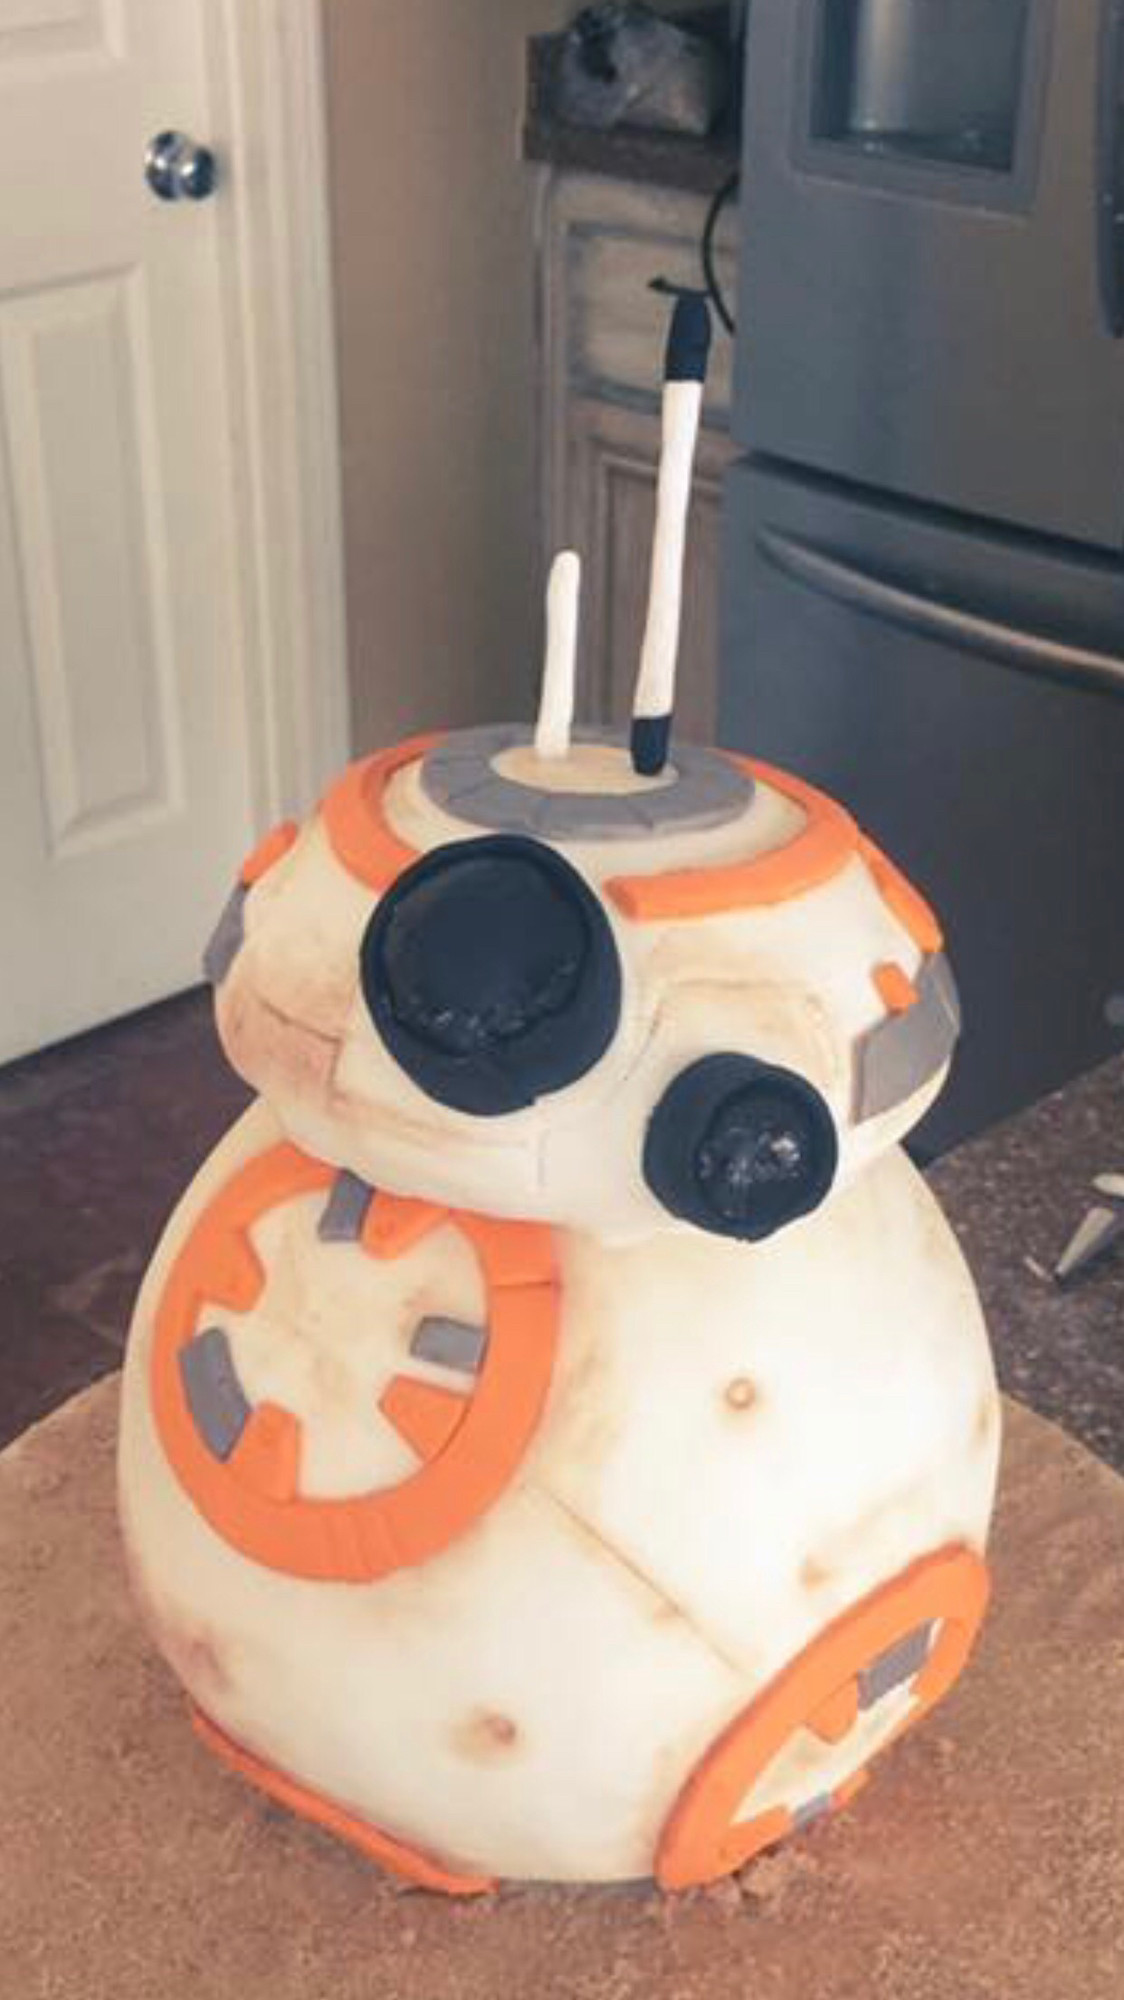 My wife baked (for a client) a BB-8 cake!